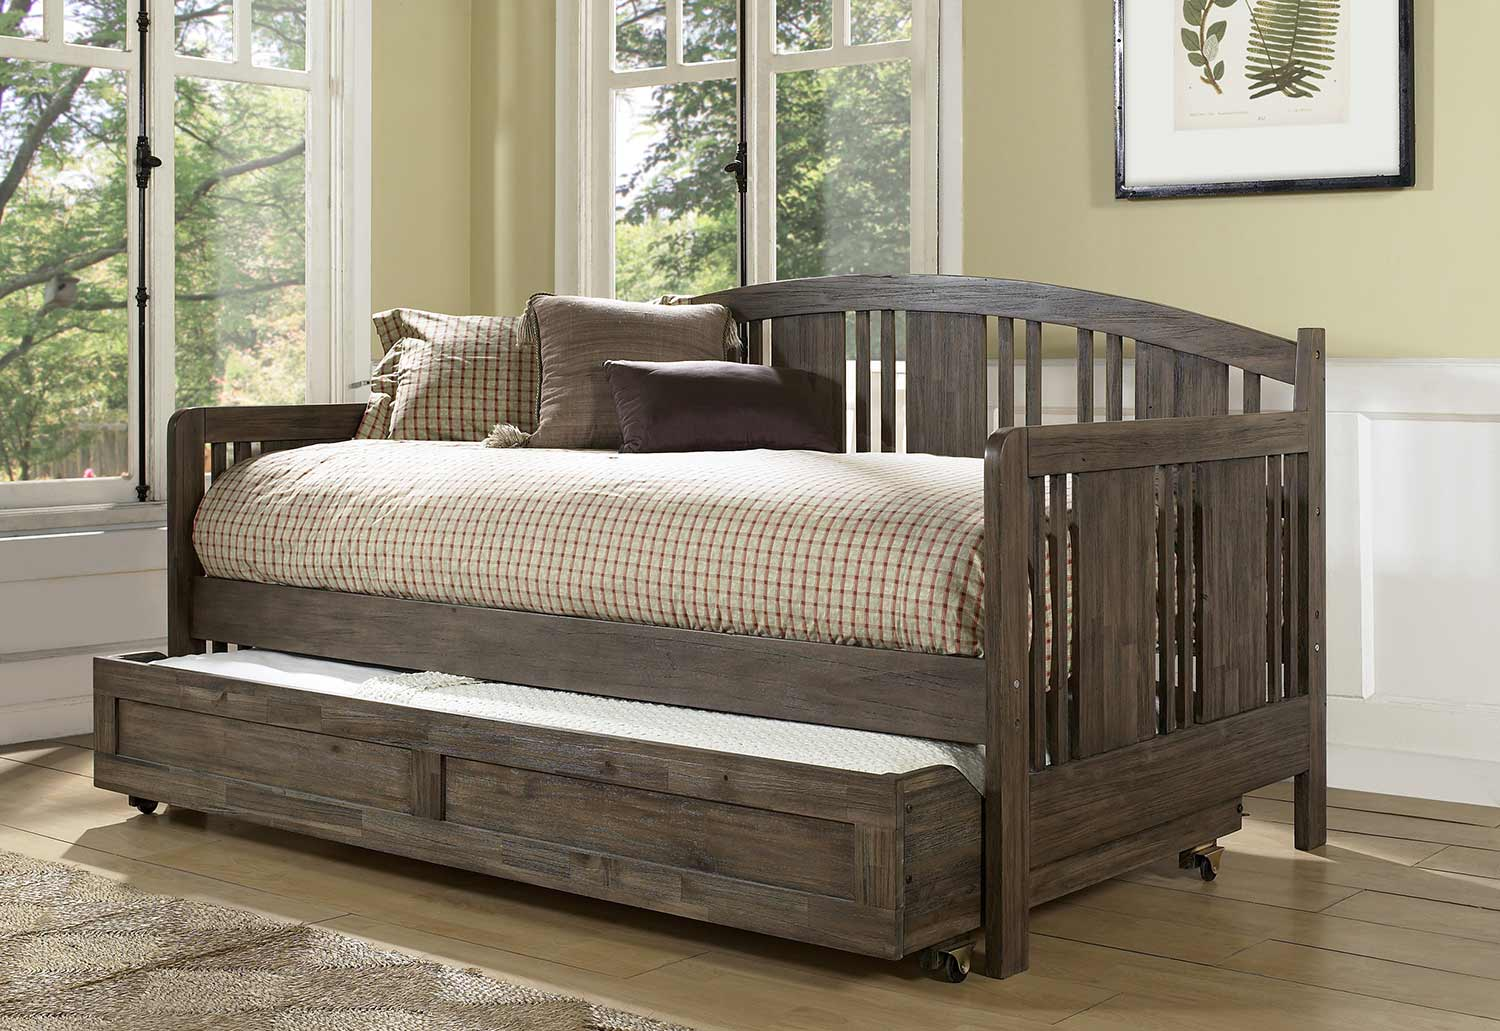 Hillsdale Dana Daybed with Trundle - Brushed Acacia